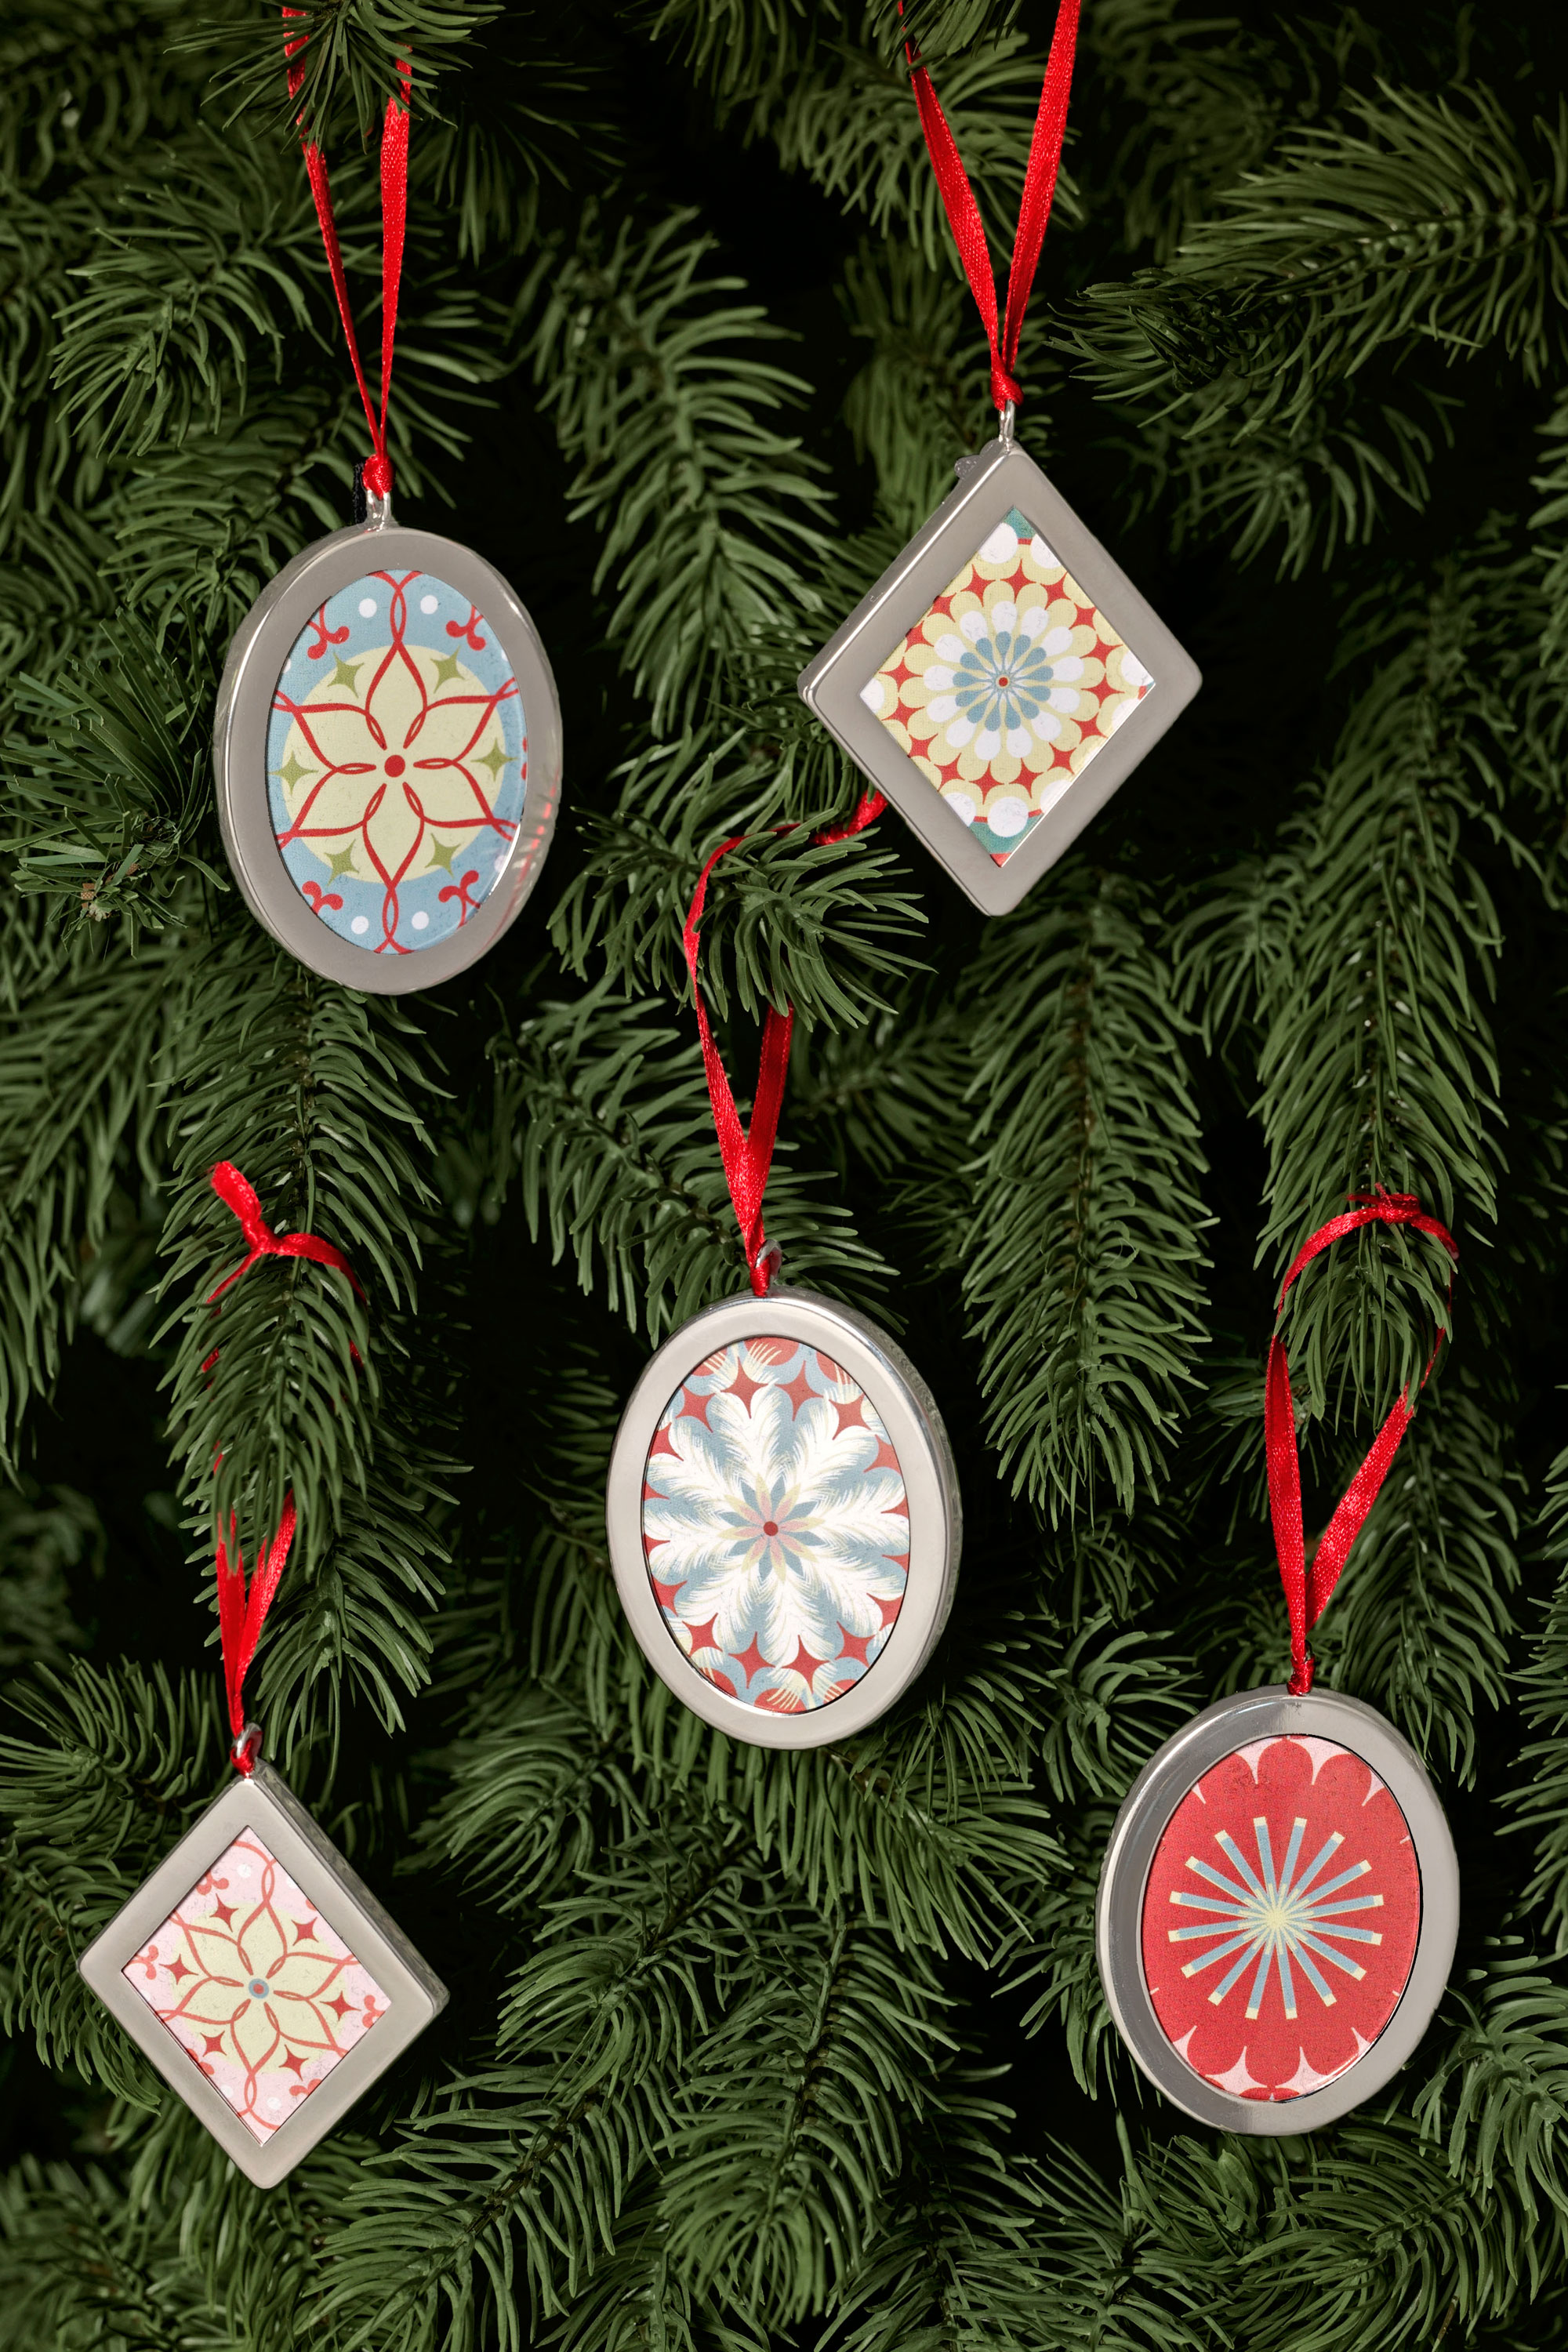 Uncategorized Ornament Ideas 55 homemade christmas ornaments diy crafts with tree ornaments